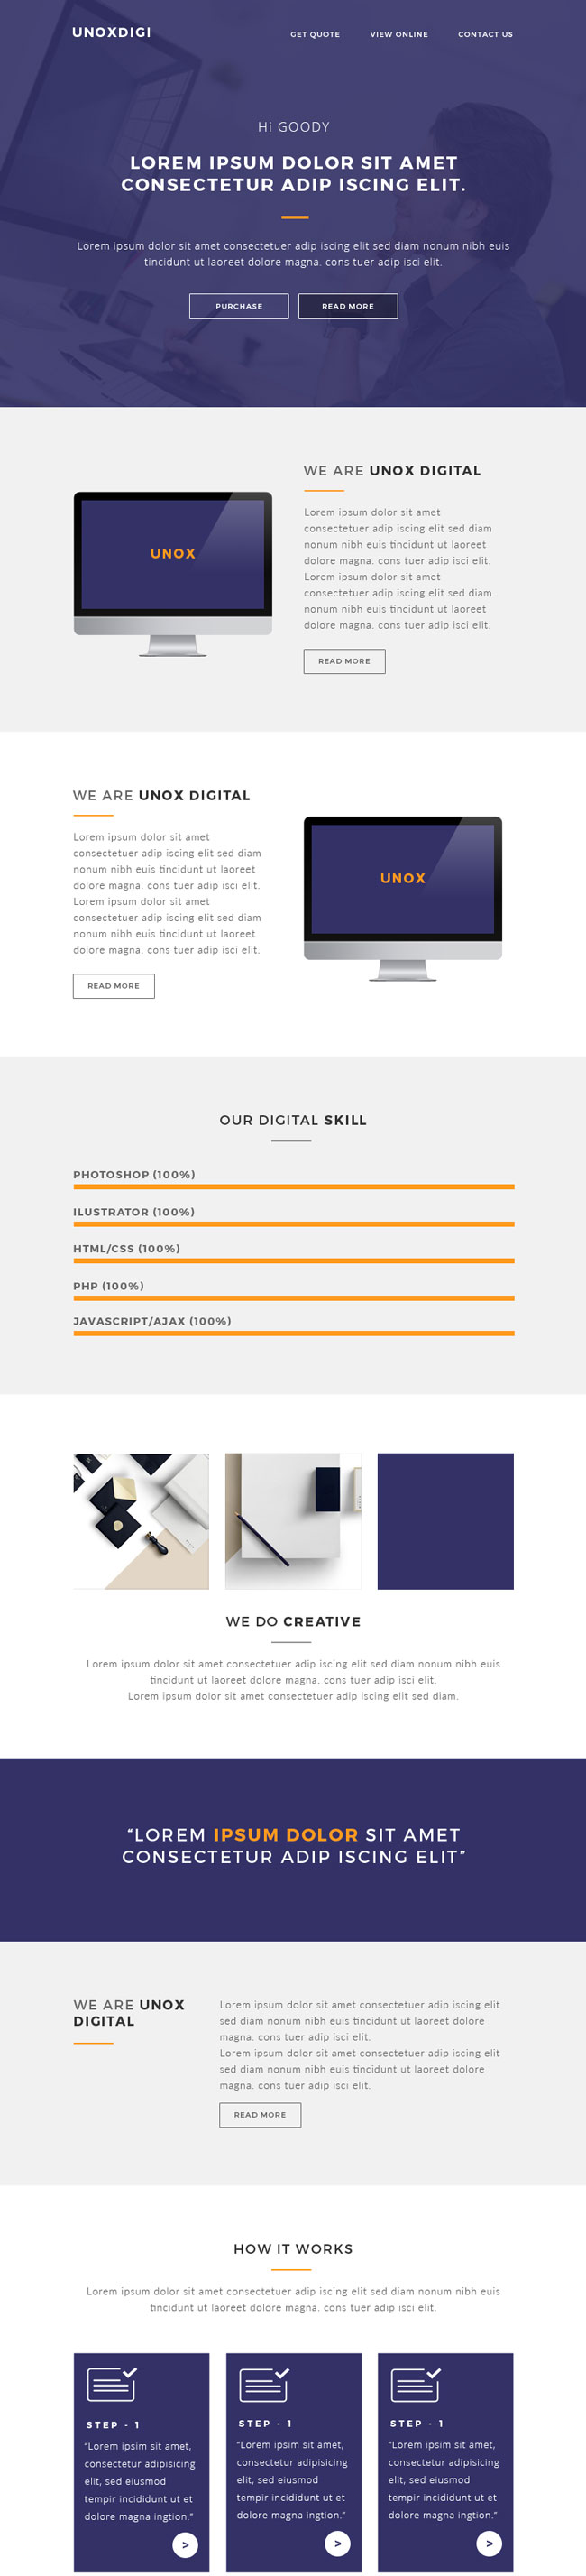 how to make a responsive email template - 35 best responsive email templates 2015